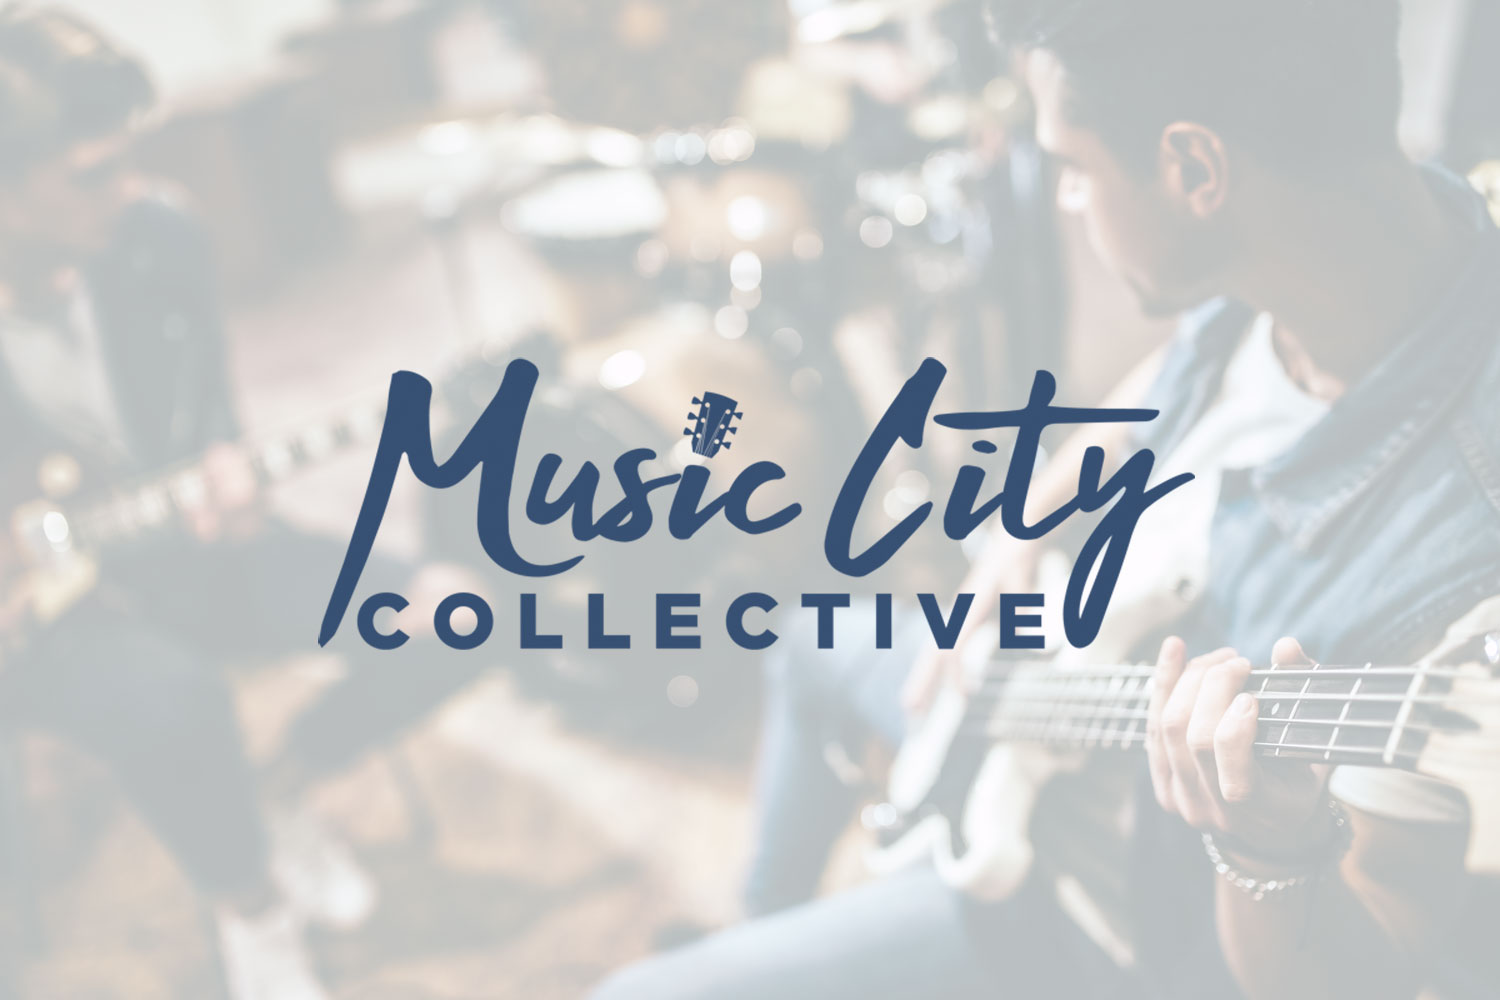 Music_City_Collective_custom_brand_logo_and_wordpress_website_design_by_franklin_lane_creative_portfolio5